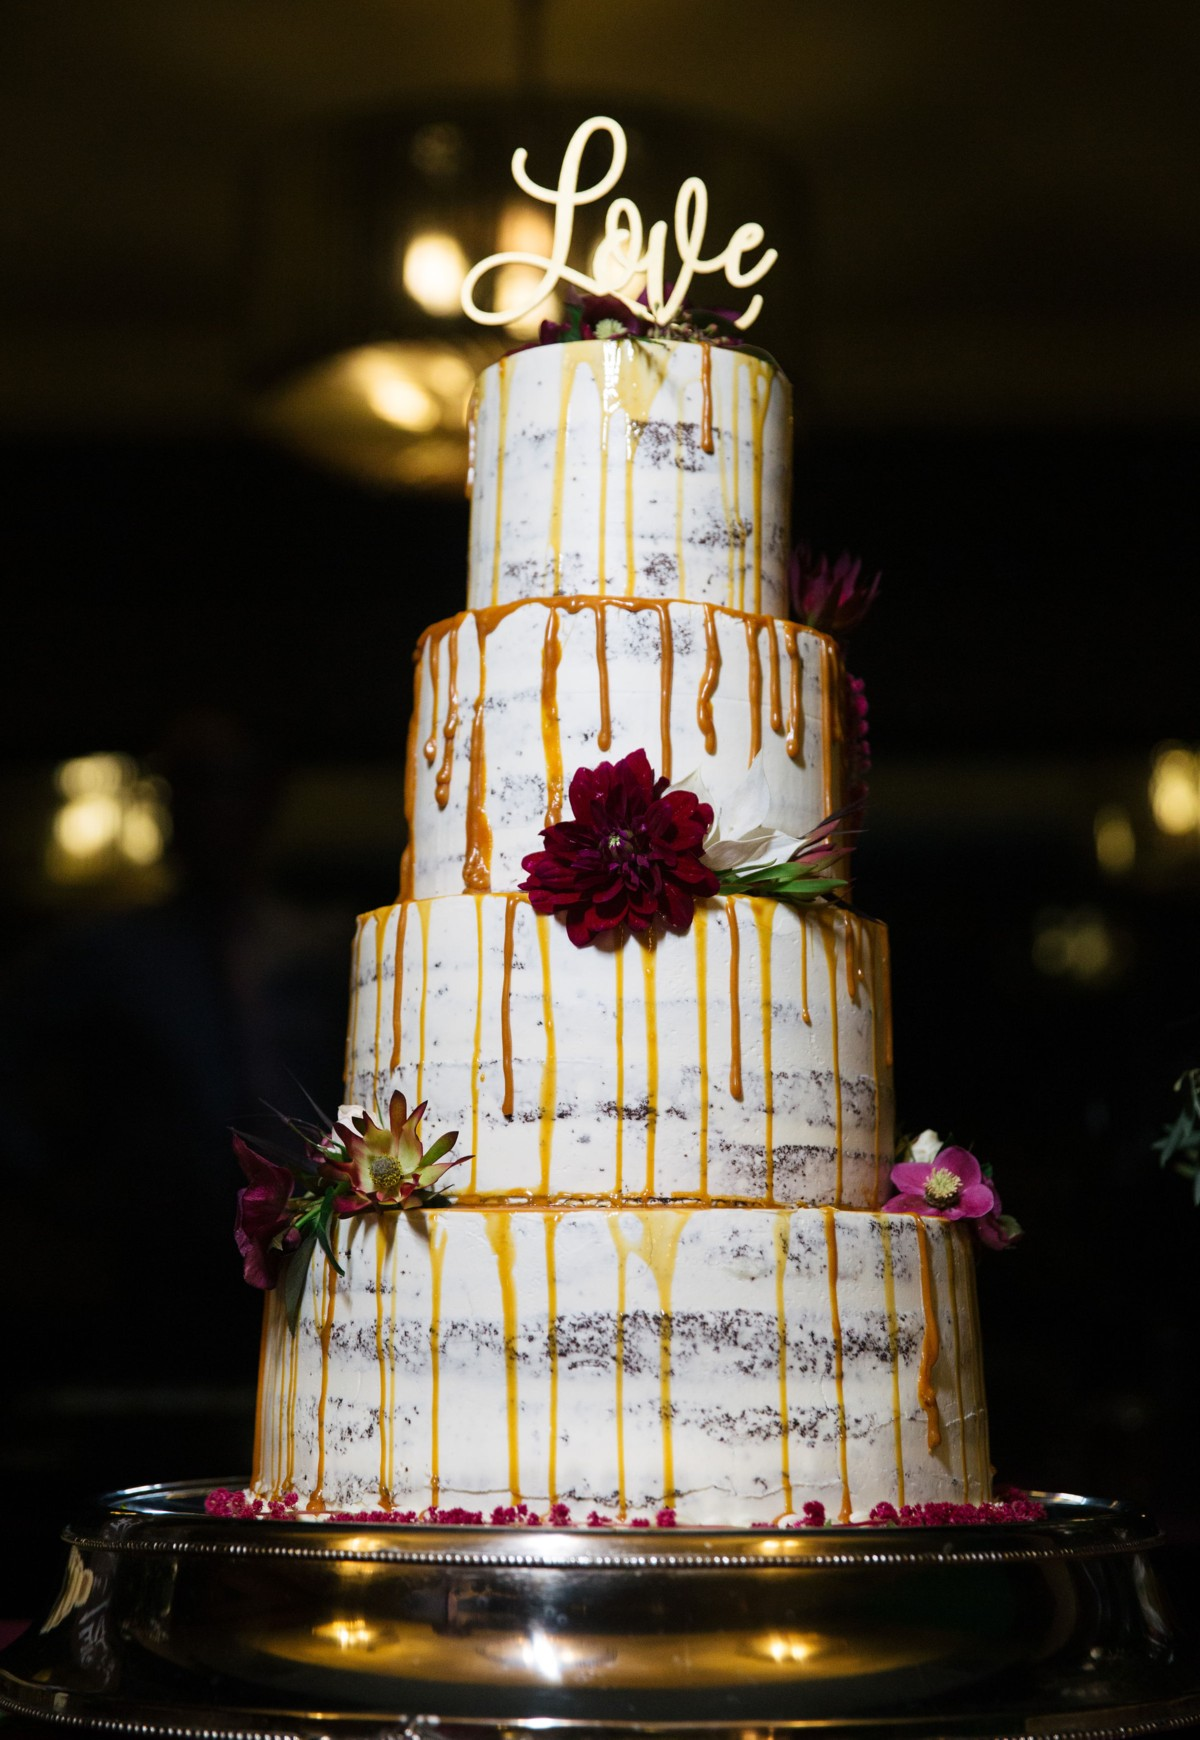 Wedding Cake - Resort at Squaw Creek - Lake Tahoe wedding